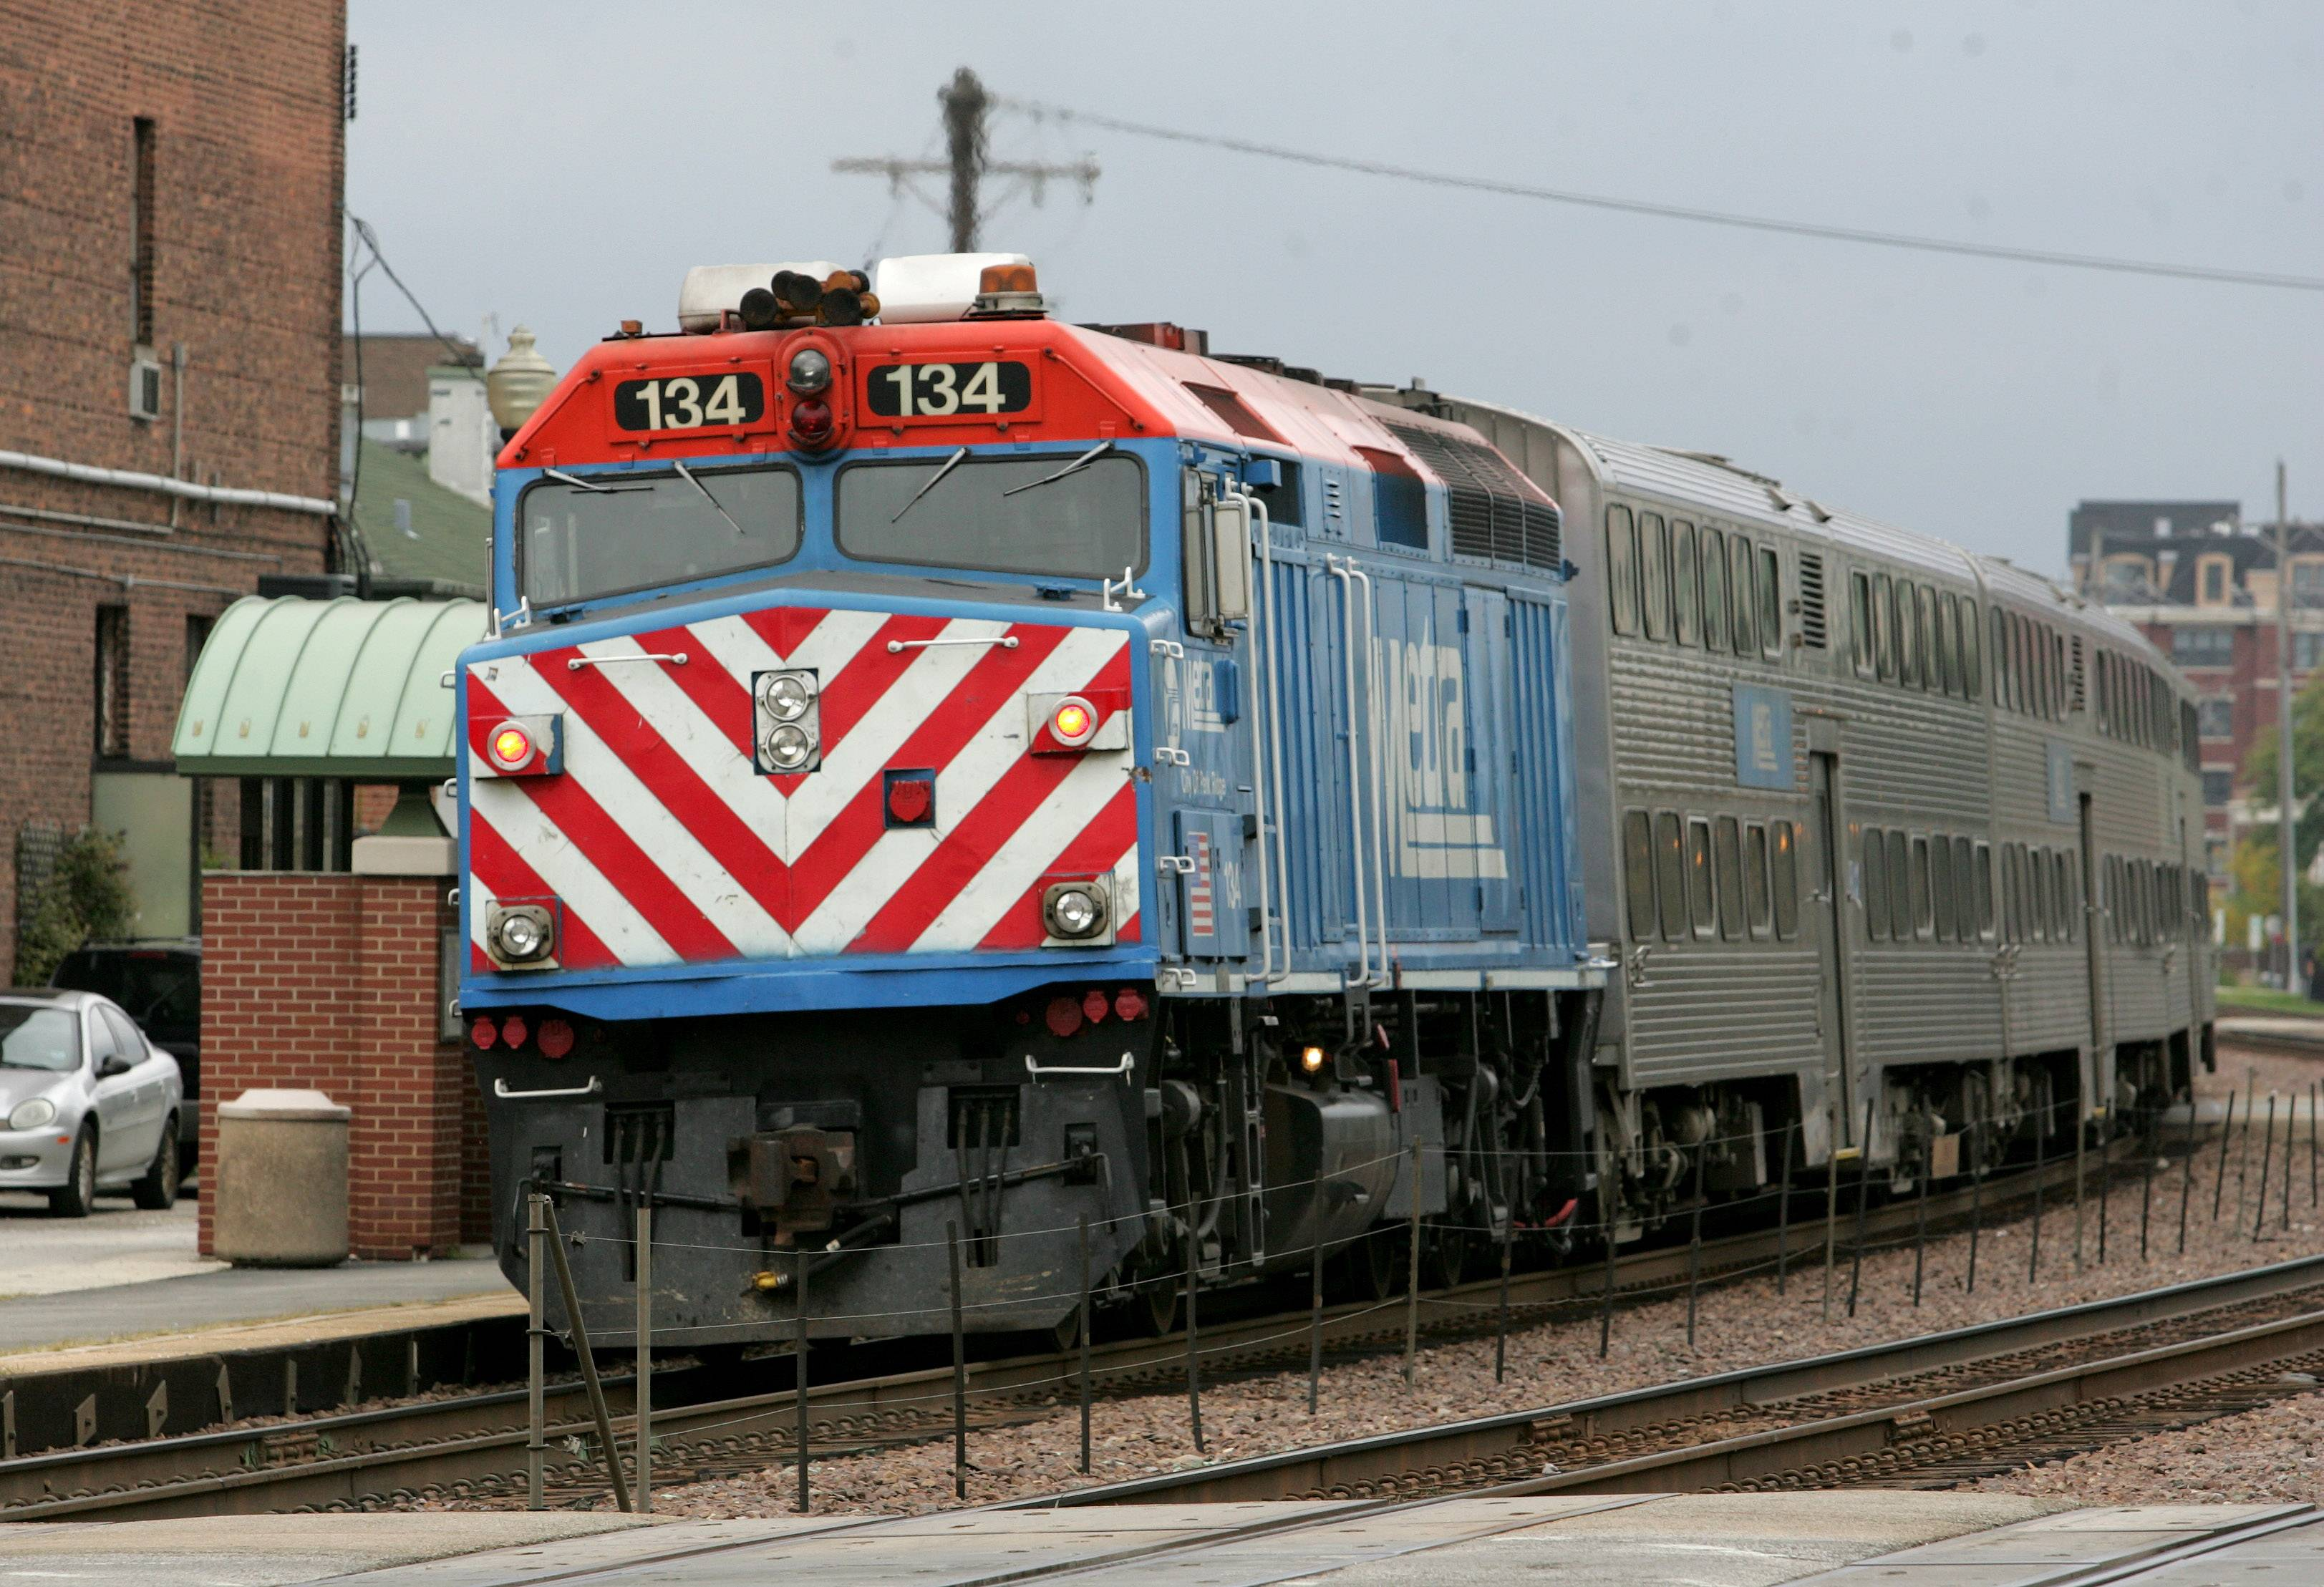 Metra service expansion called unlikely in face of shortfall